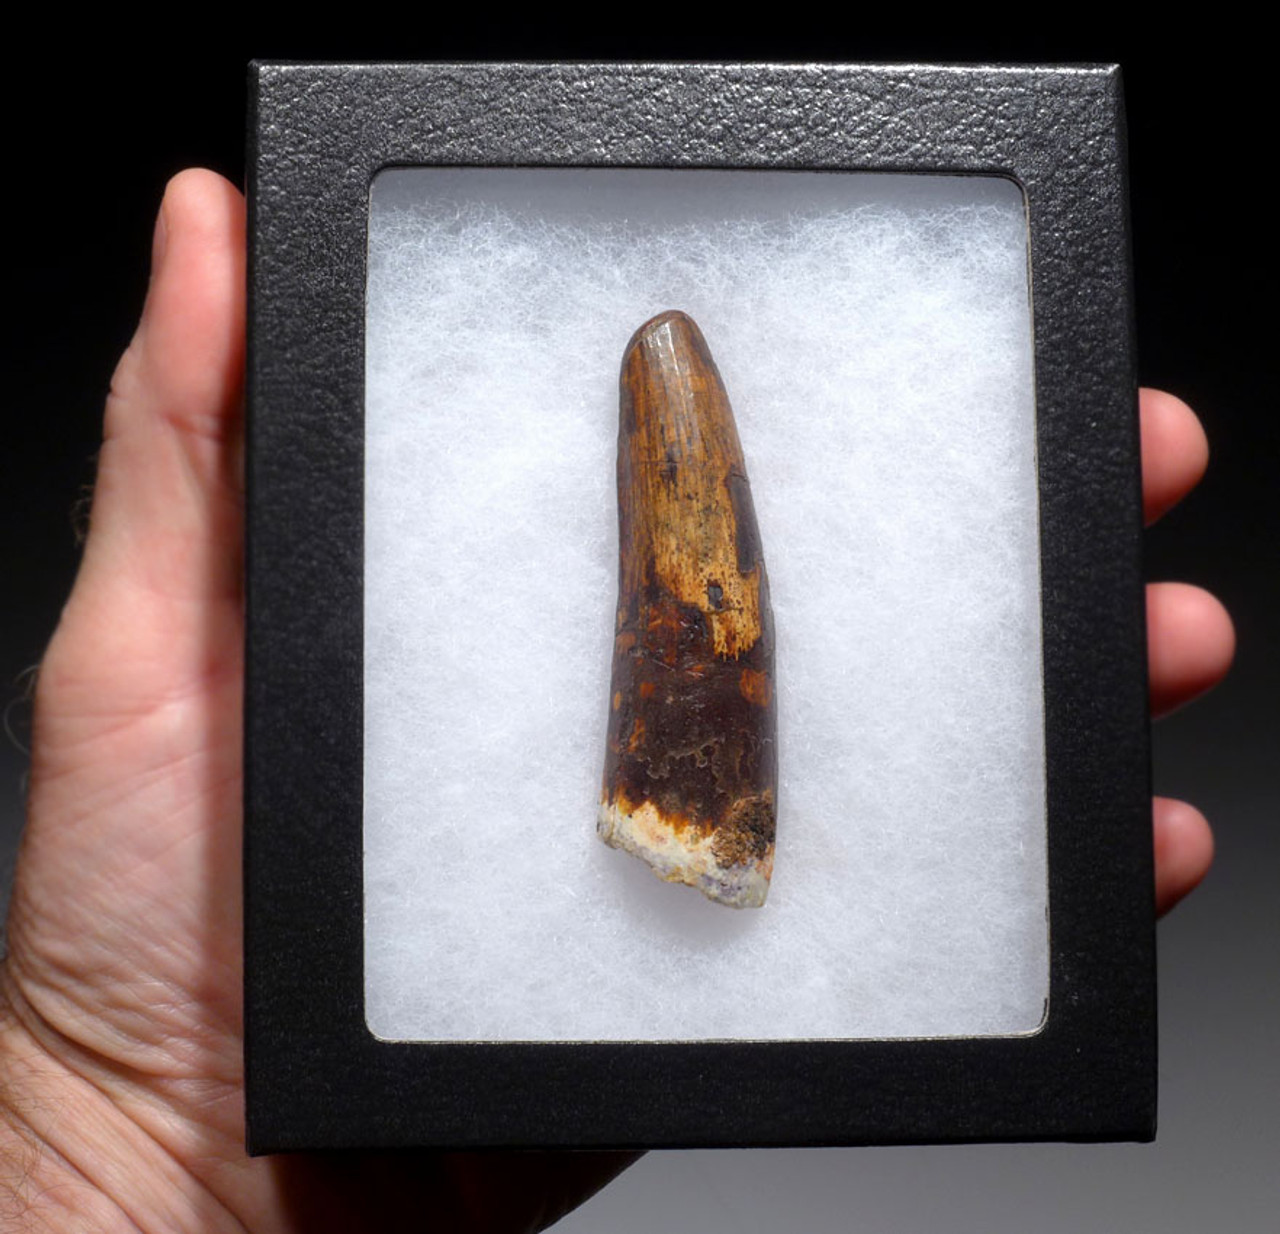 LARGE 3 INCH SPINOSAURUS DINOSAUR FOSSIL TOOTH *DT5-323